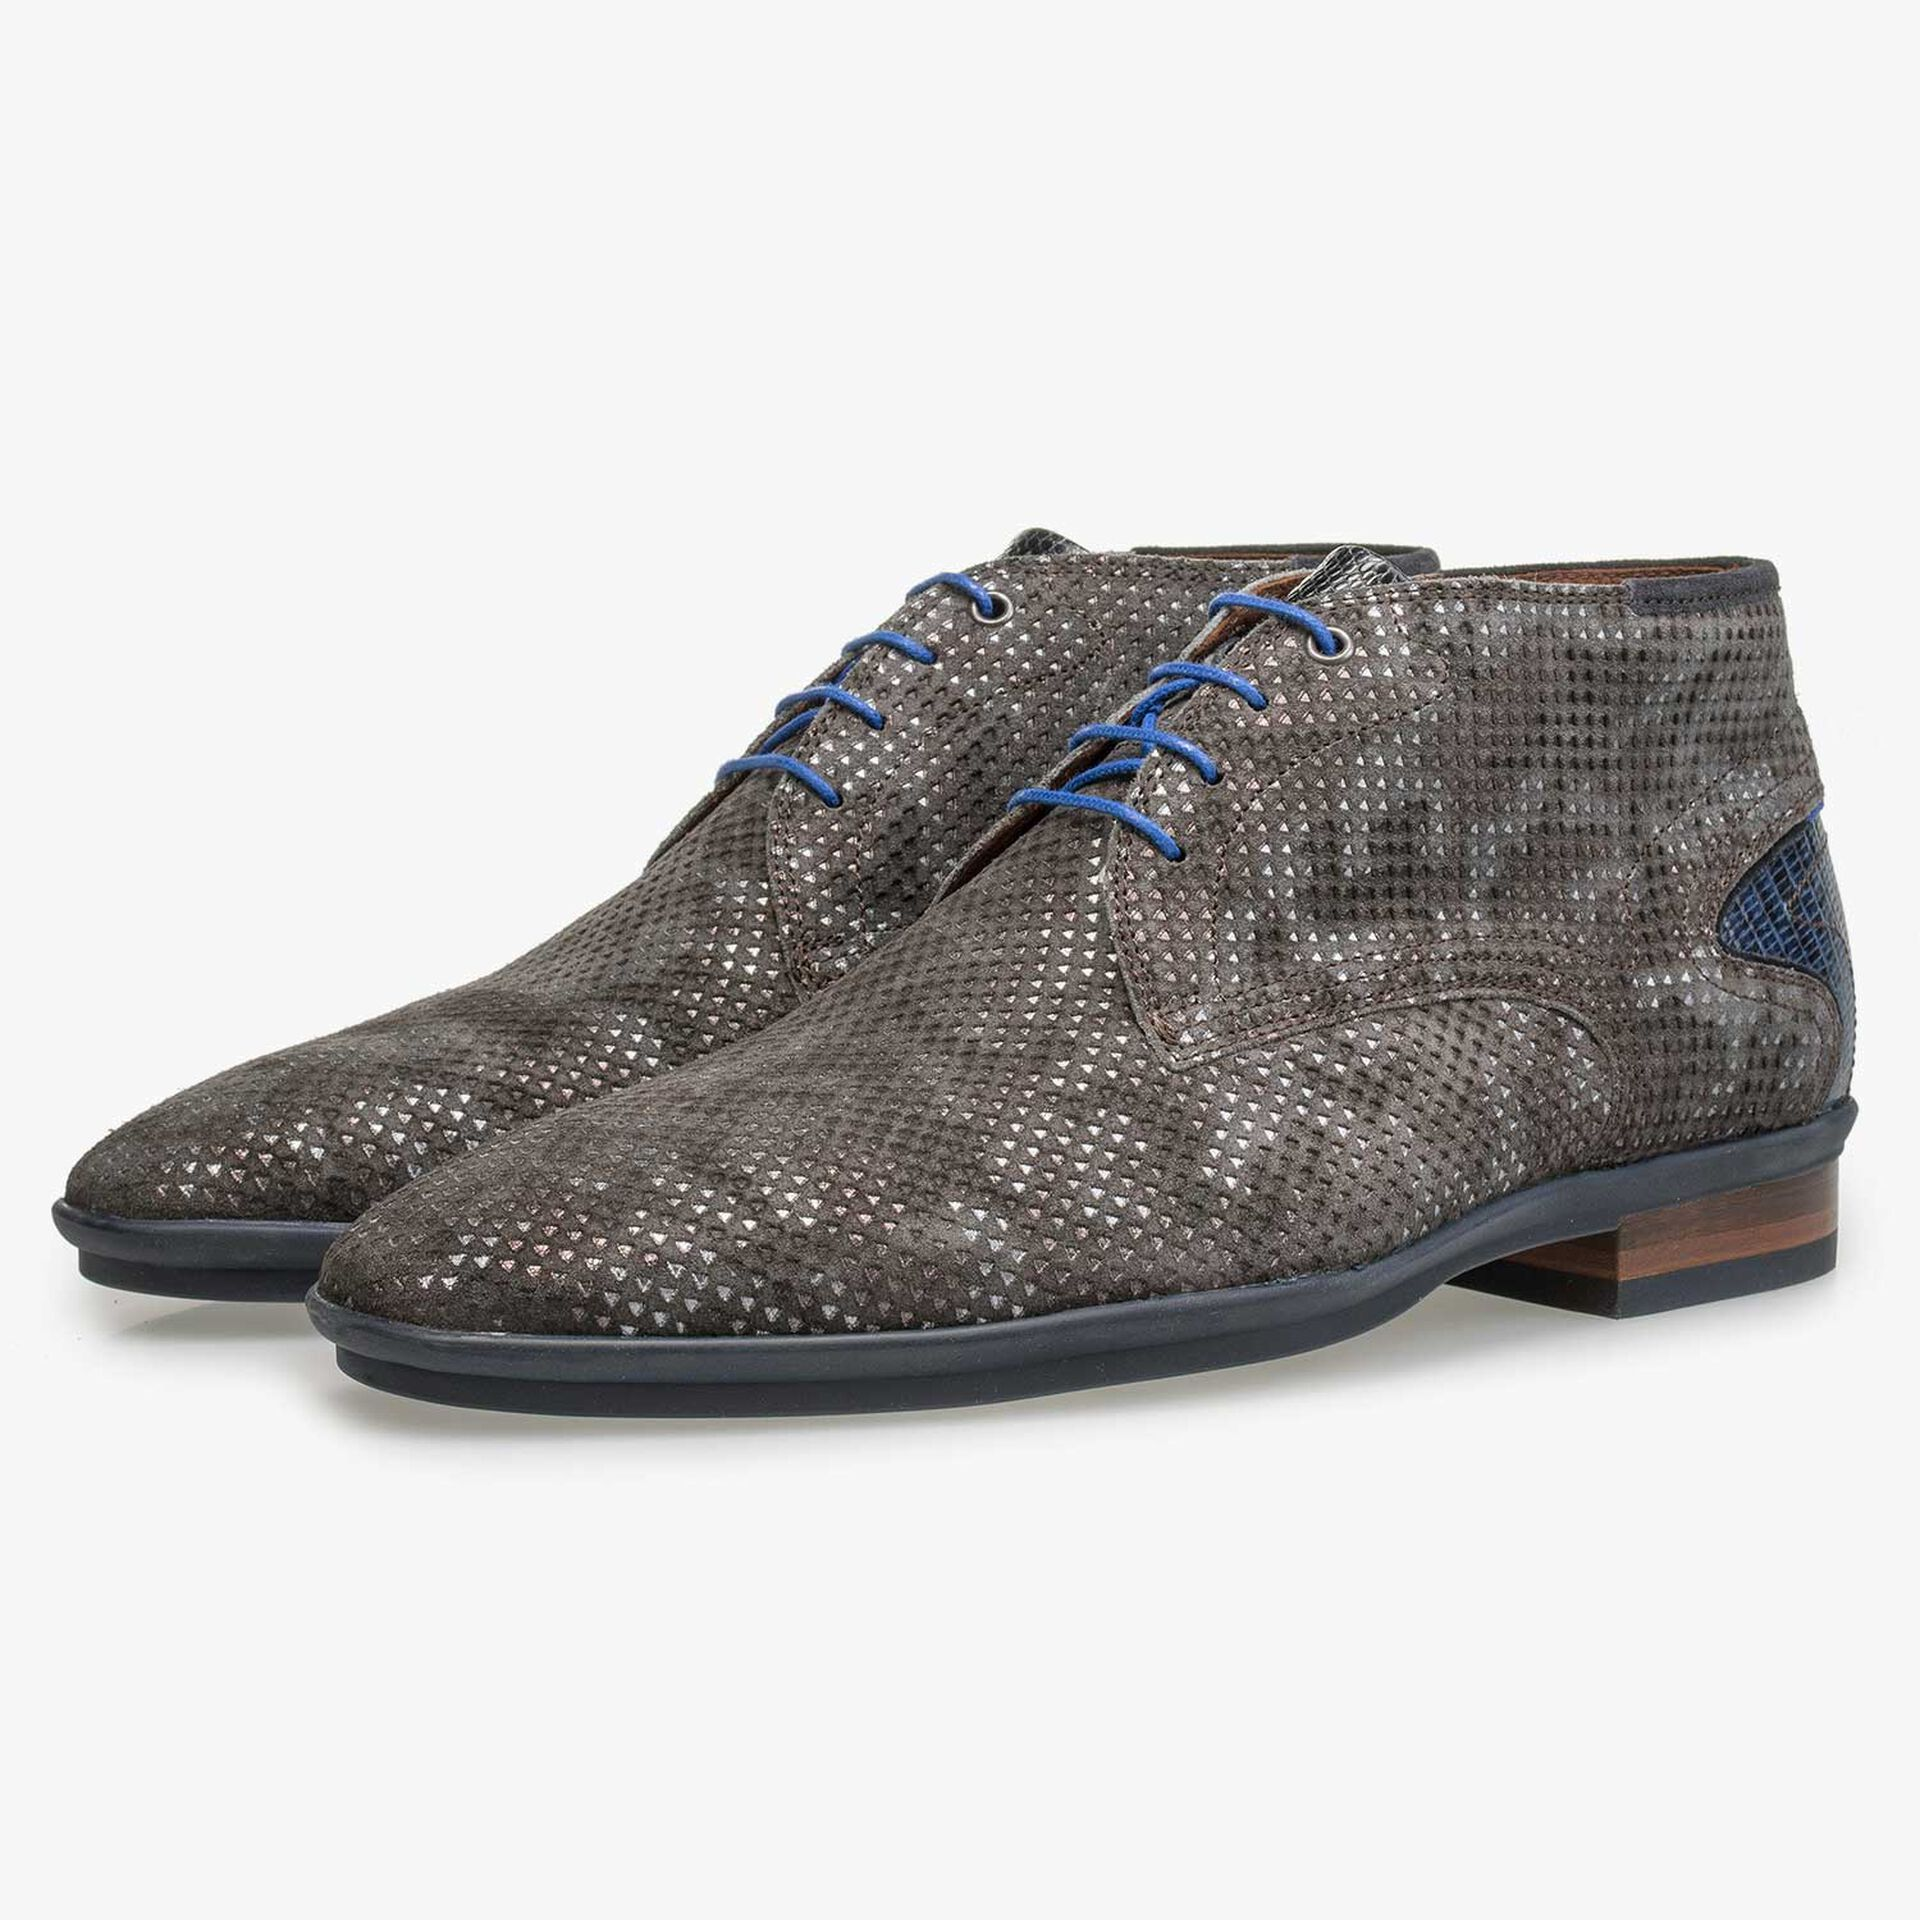 Mid-high brown patterned lace shoe